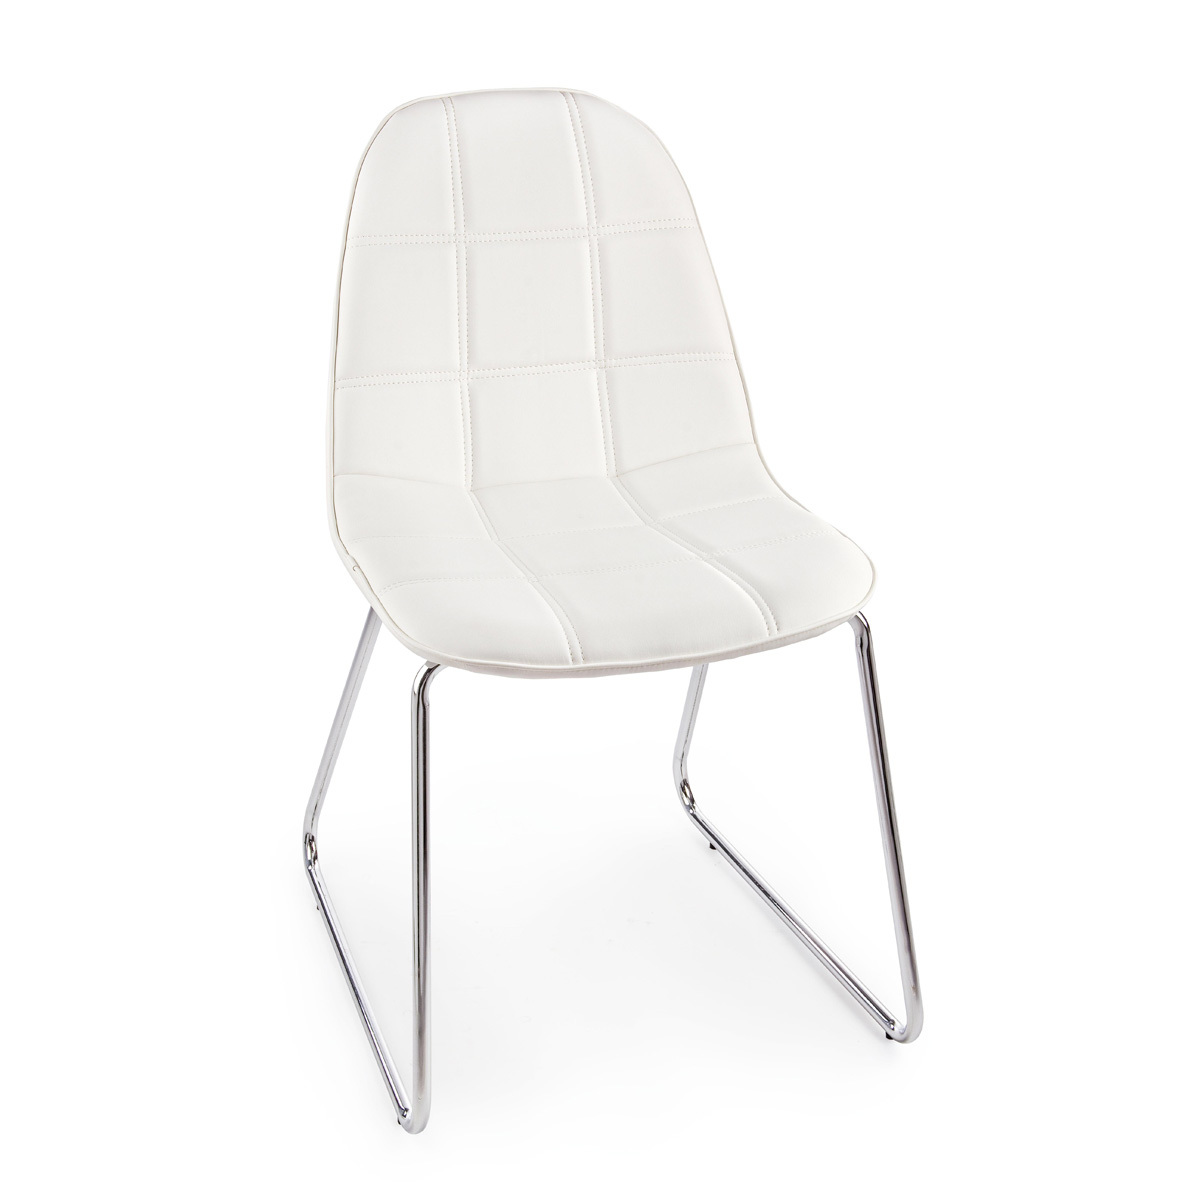 Photos 1: Bizzotto Chair in metal and eco-leather - white 0731662